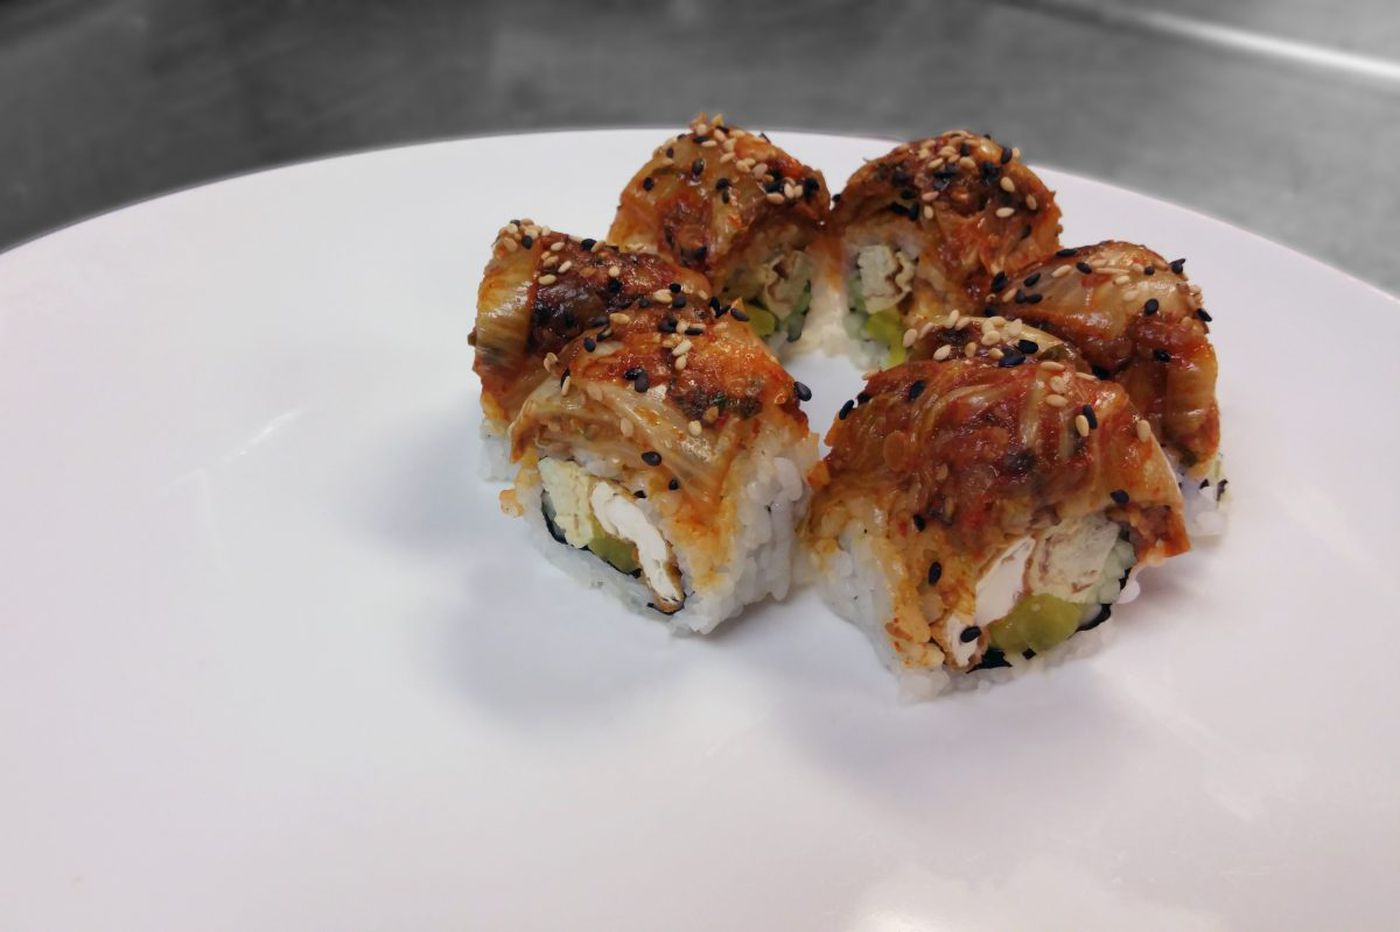 Sushi with kimchi and yam, or fried chicken and cabbage